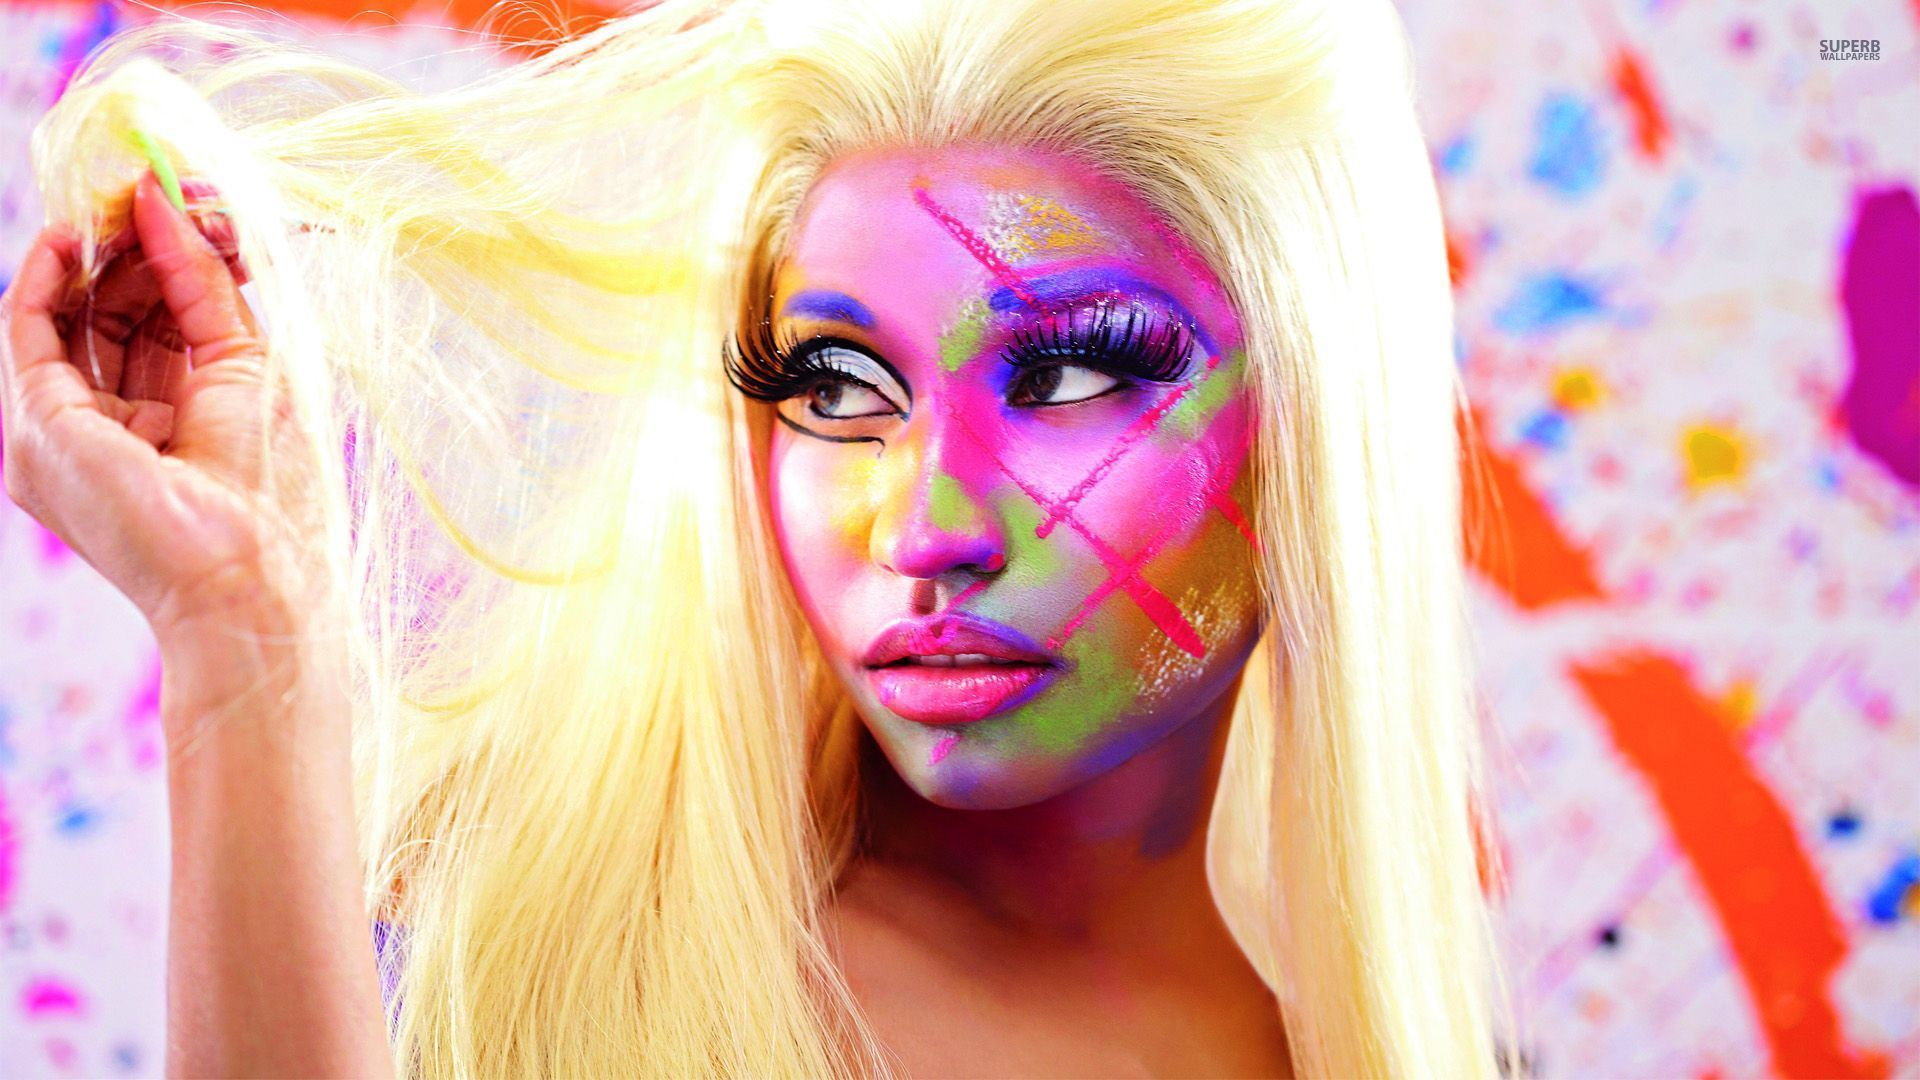 1920x1080 Nicki Minaj Pink Friday Roman Reloaded wallpaper - 1474092